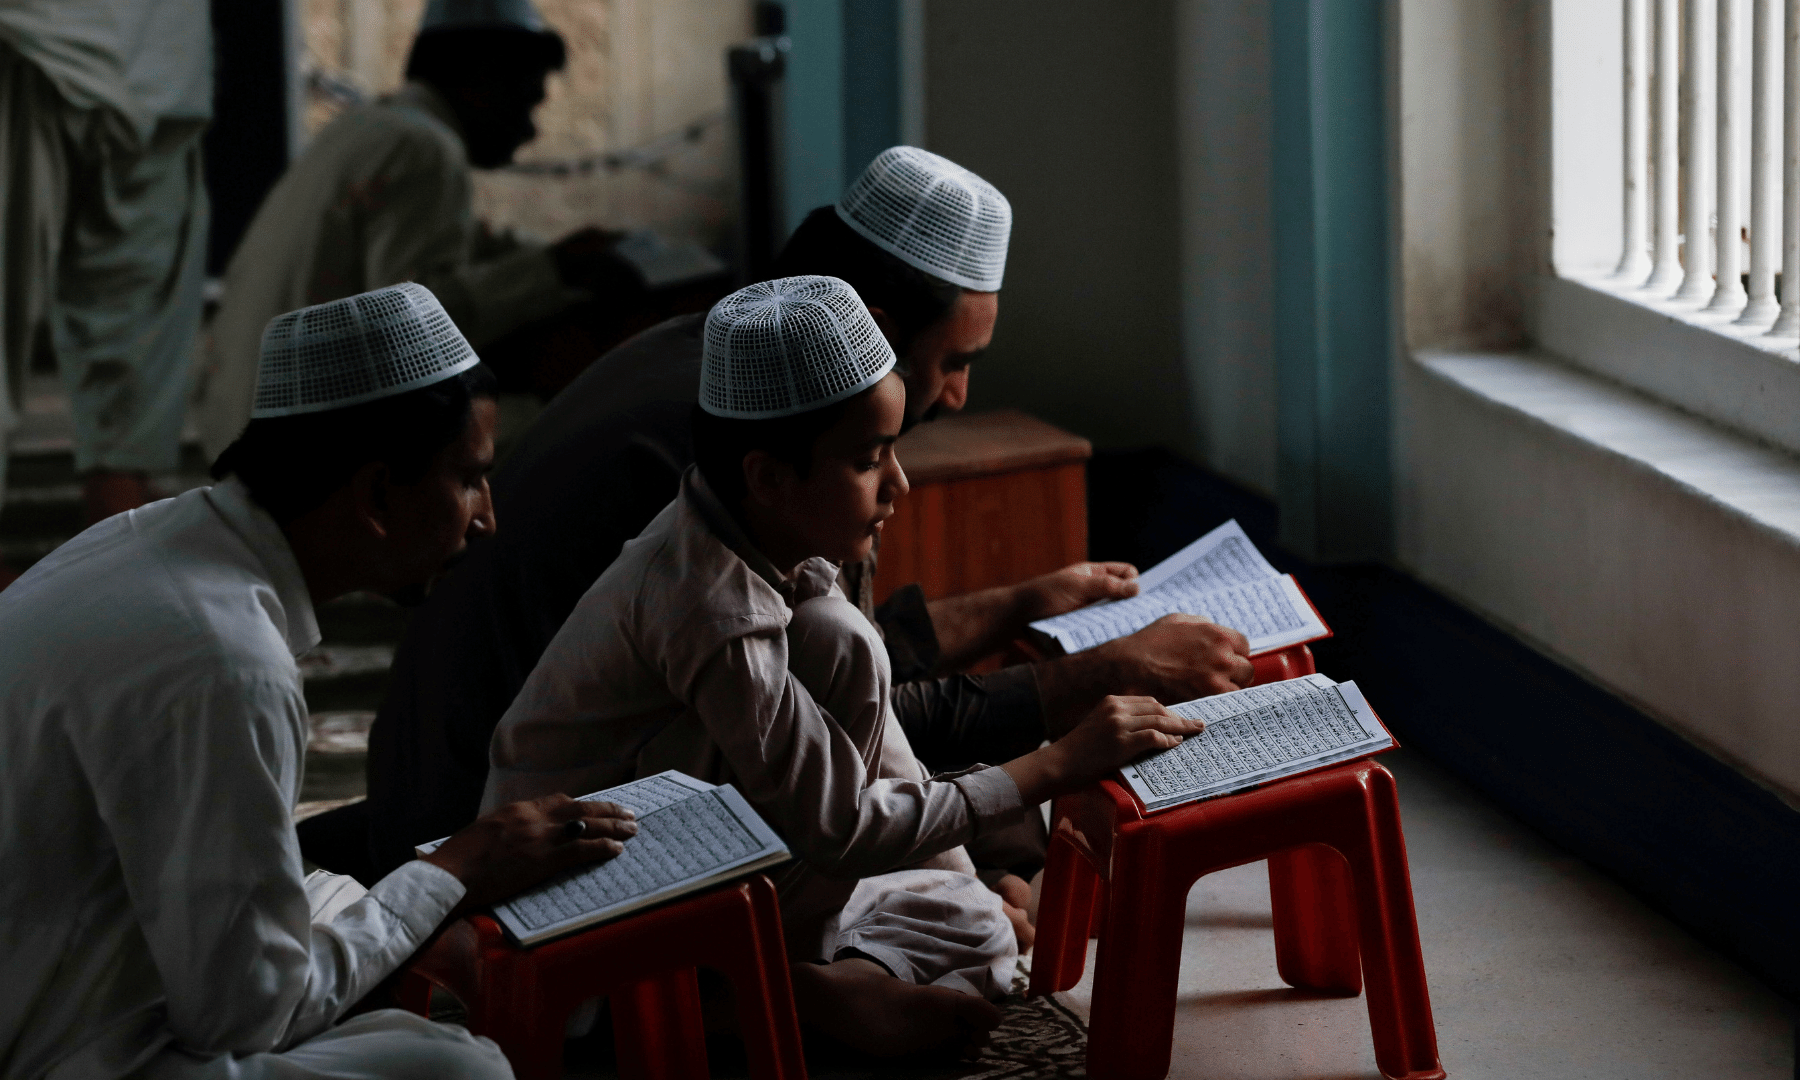 People read the Holy Quran during Ramazan, as the outbreak of the coronavirus disease continues, at a mosque in Karachi. — Reuters